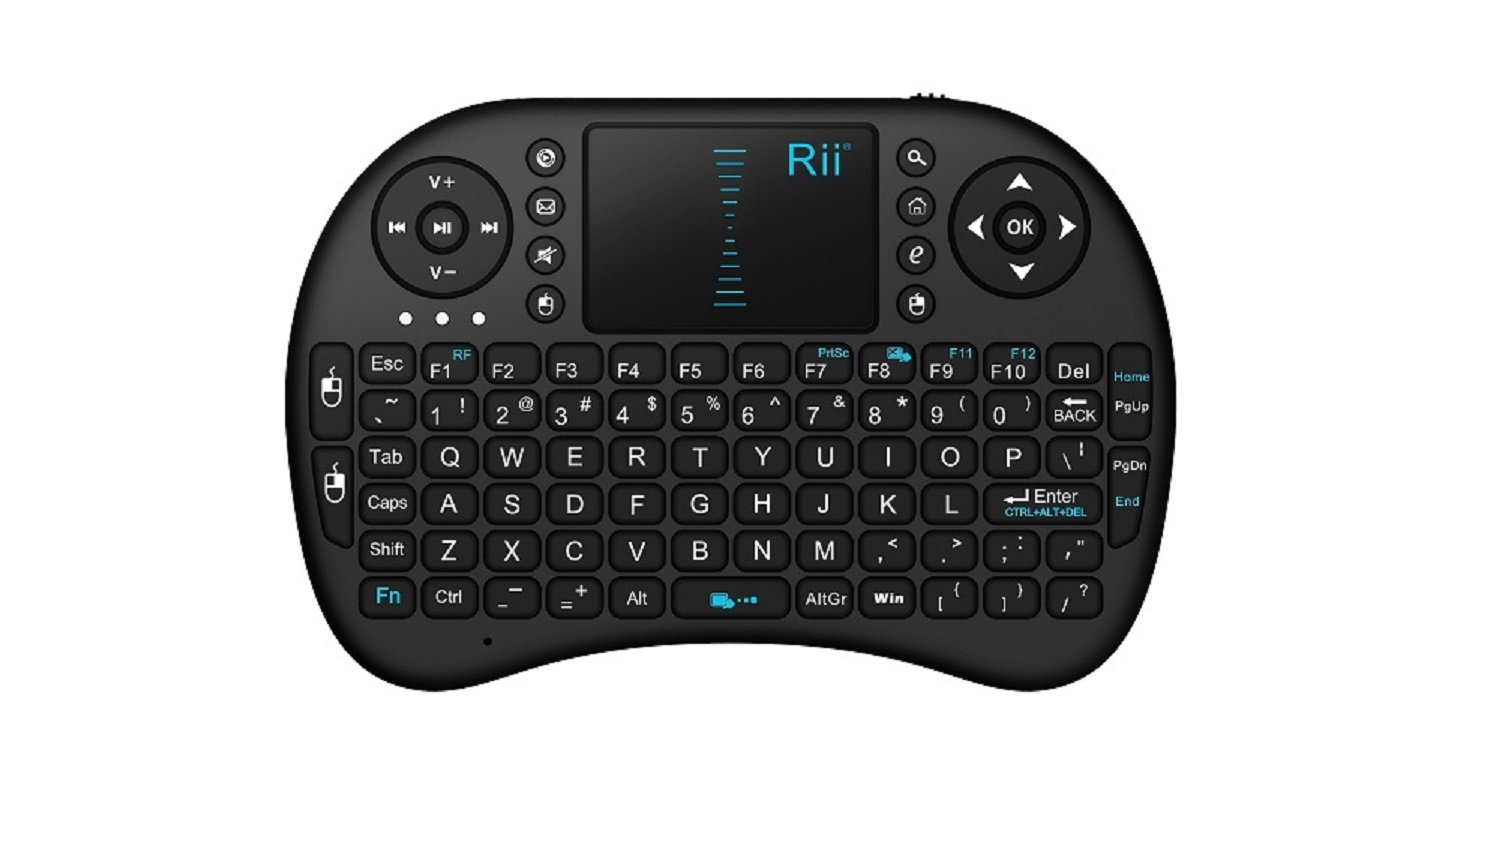 Rii i8 2.4GHz Wirelesss Touchpad Keyboard Mouse for PC, Android TV Box, Black (RT-MWK-08)